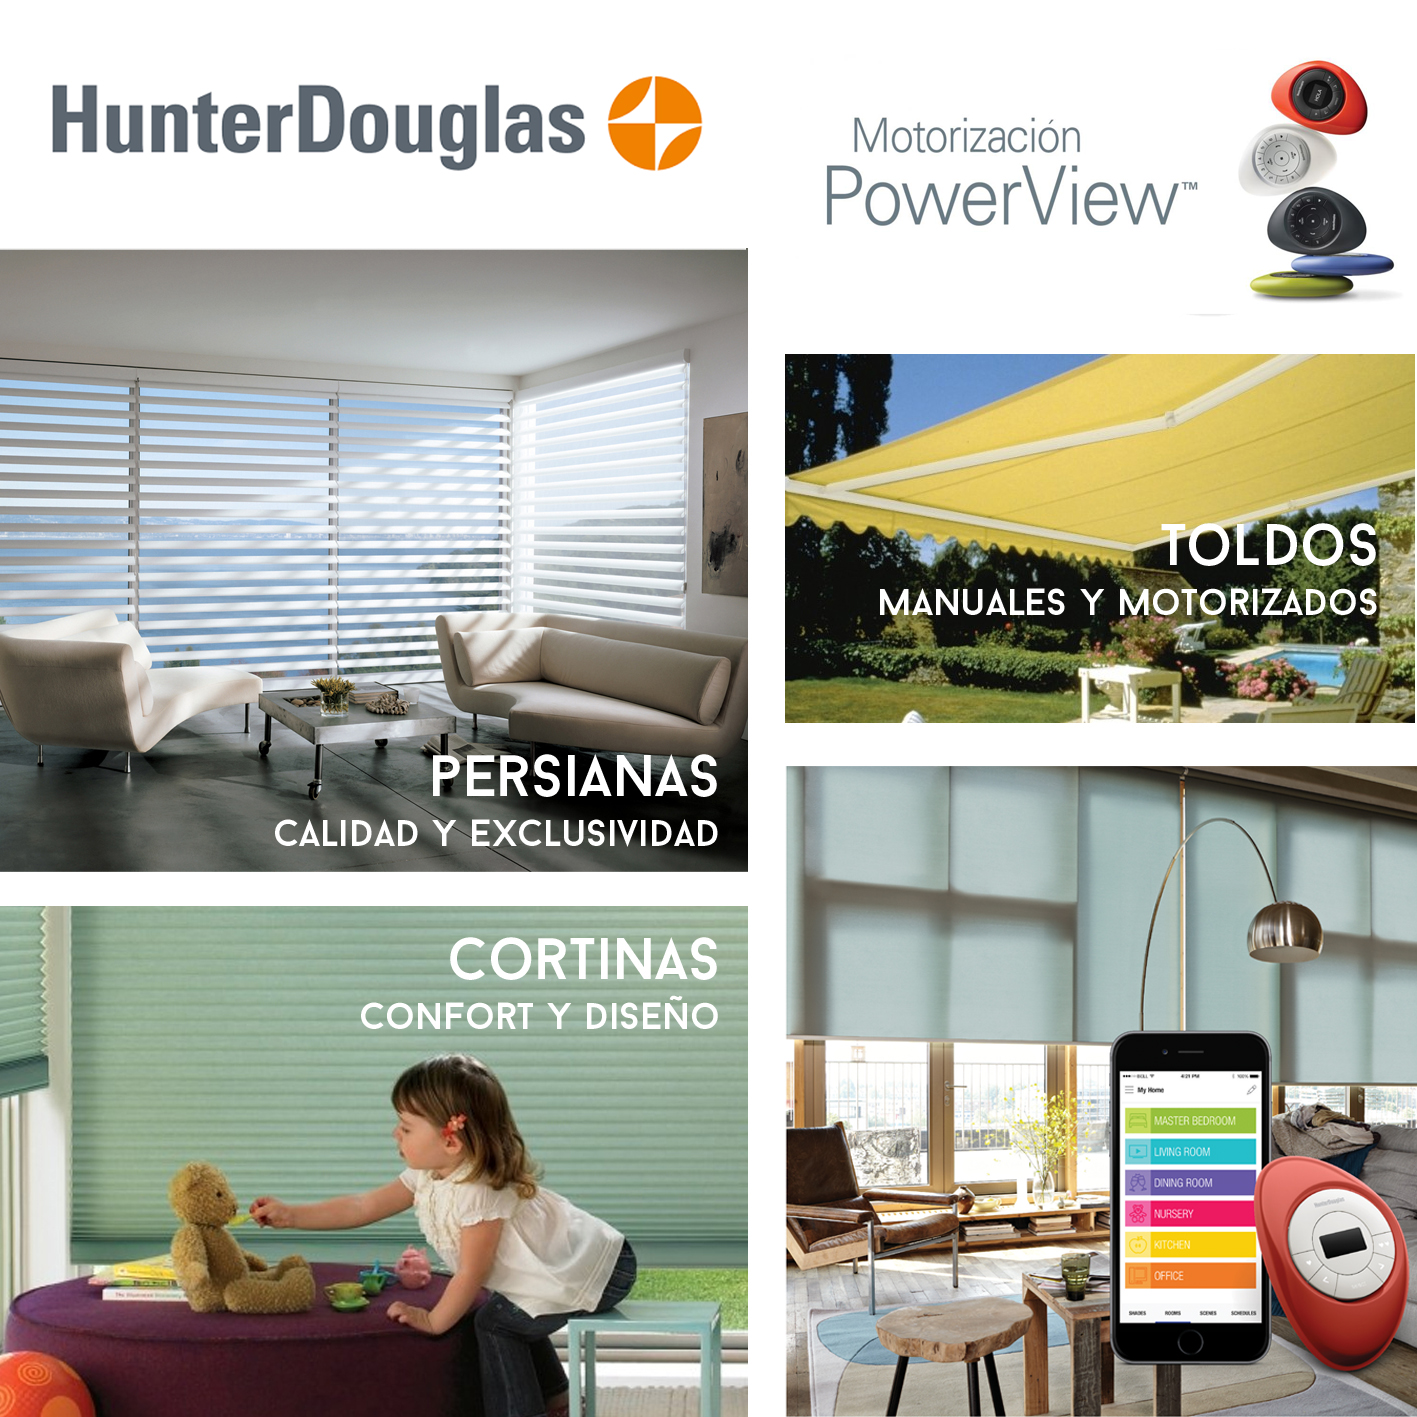 3 hunter douglas